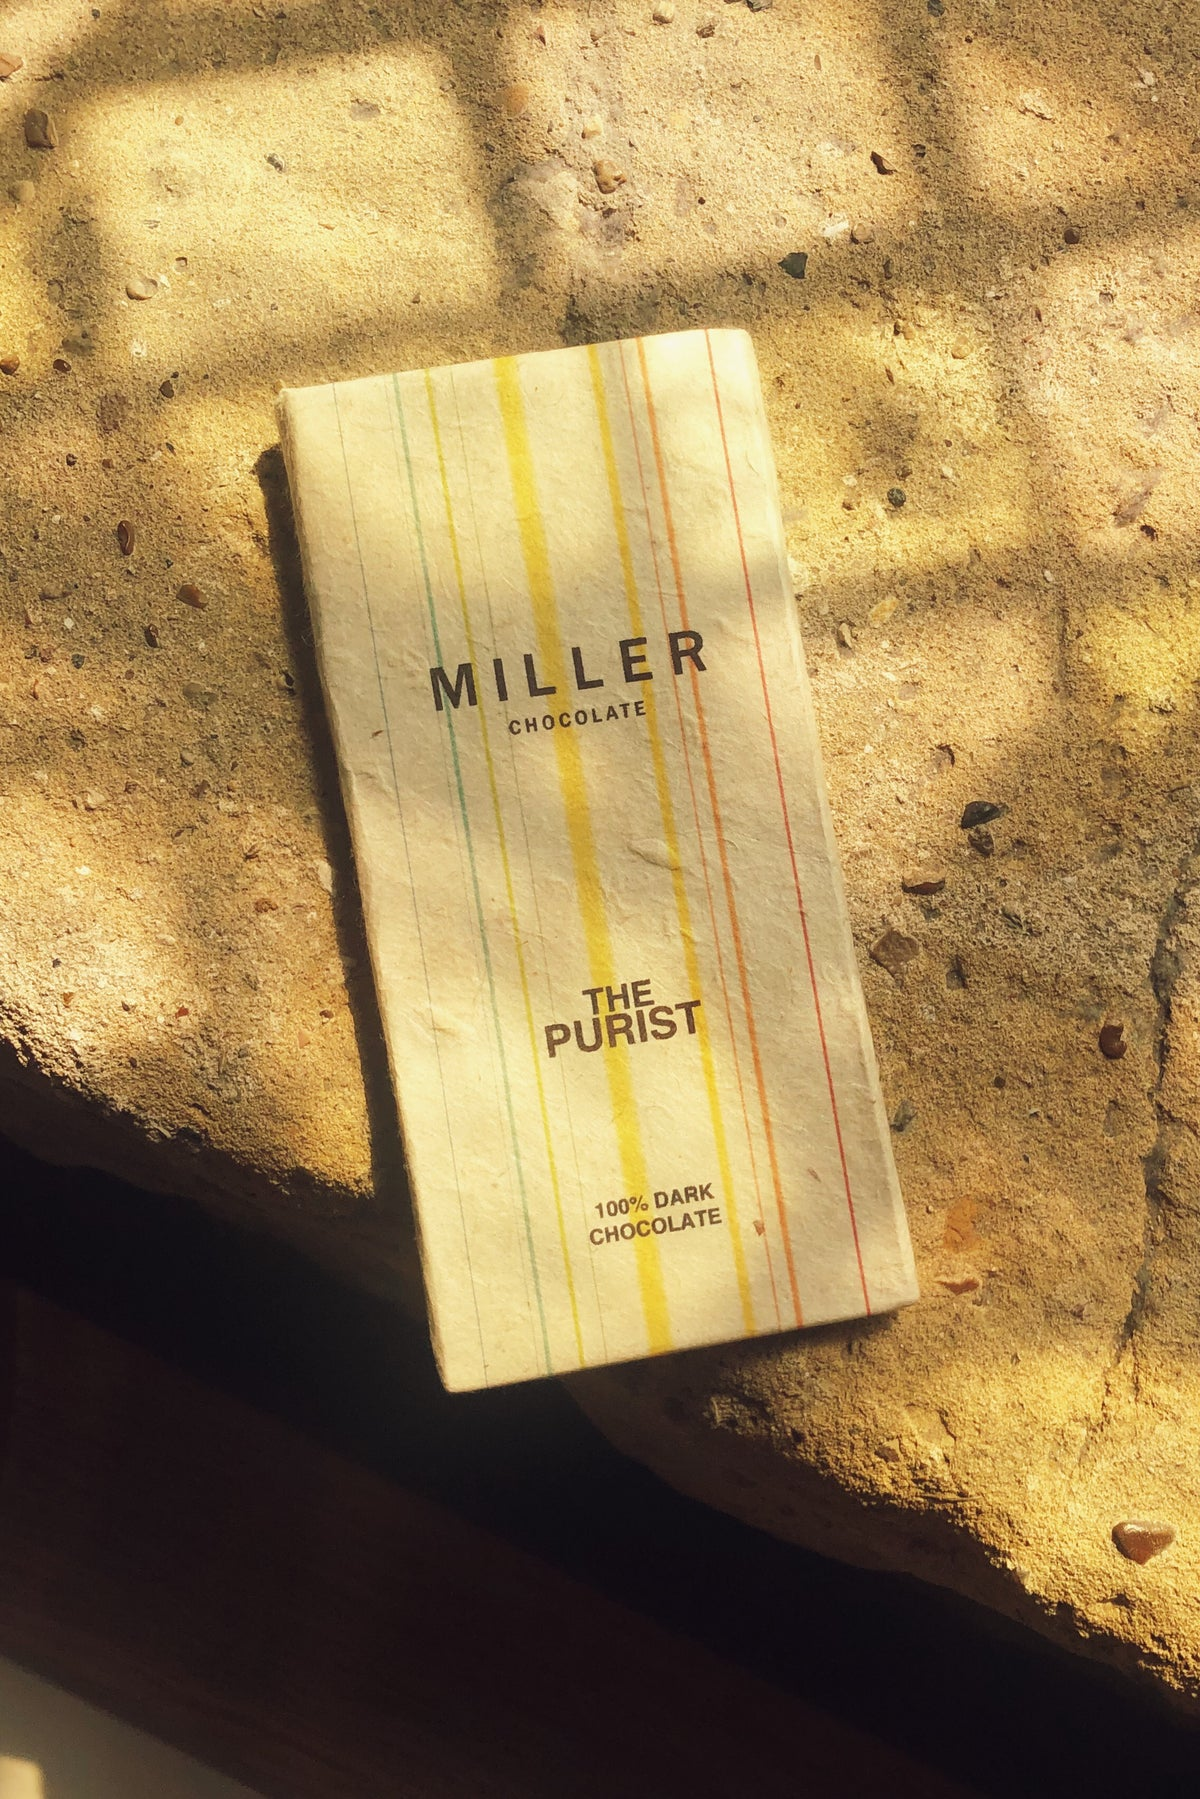 purist 100% single ingredient artisan dark chocolate by Miller Chocolate. Enjoy the dark complex flavor with no sugar added.